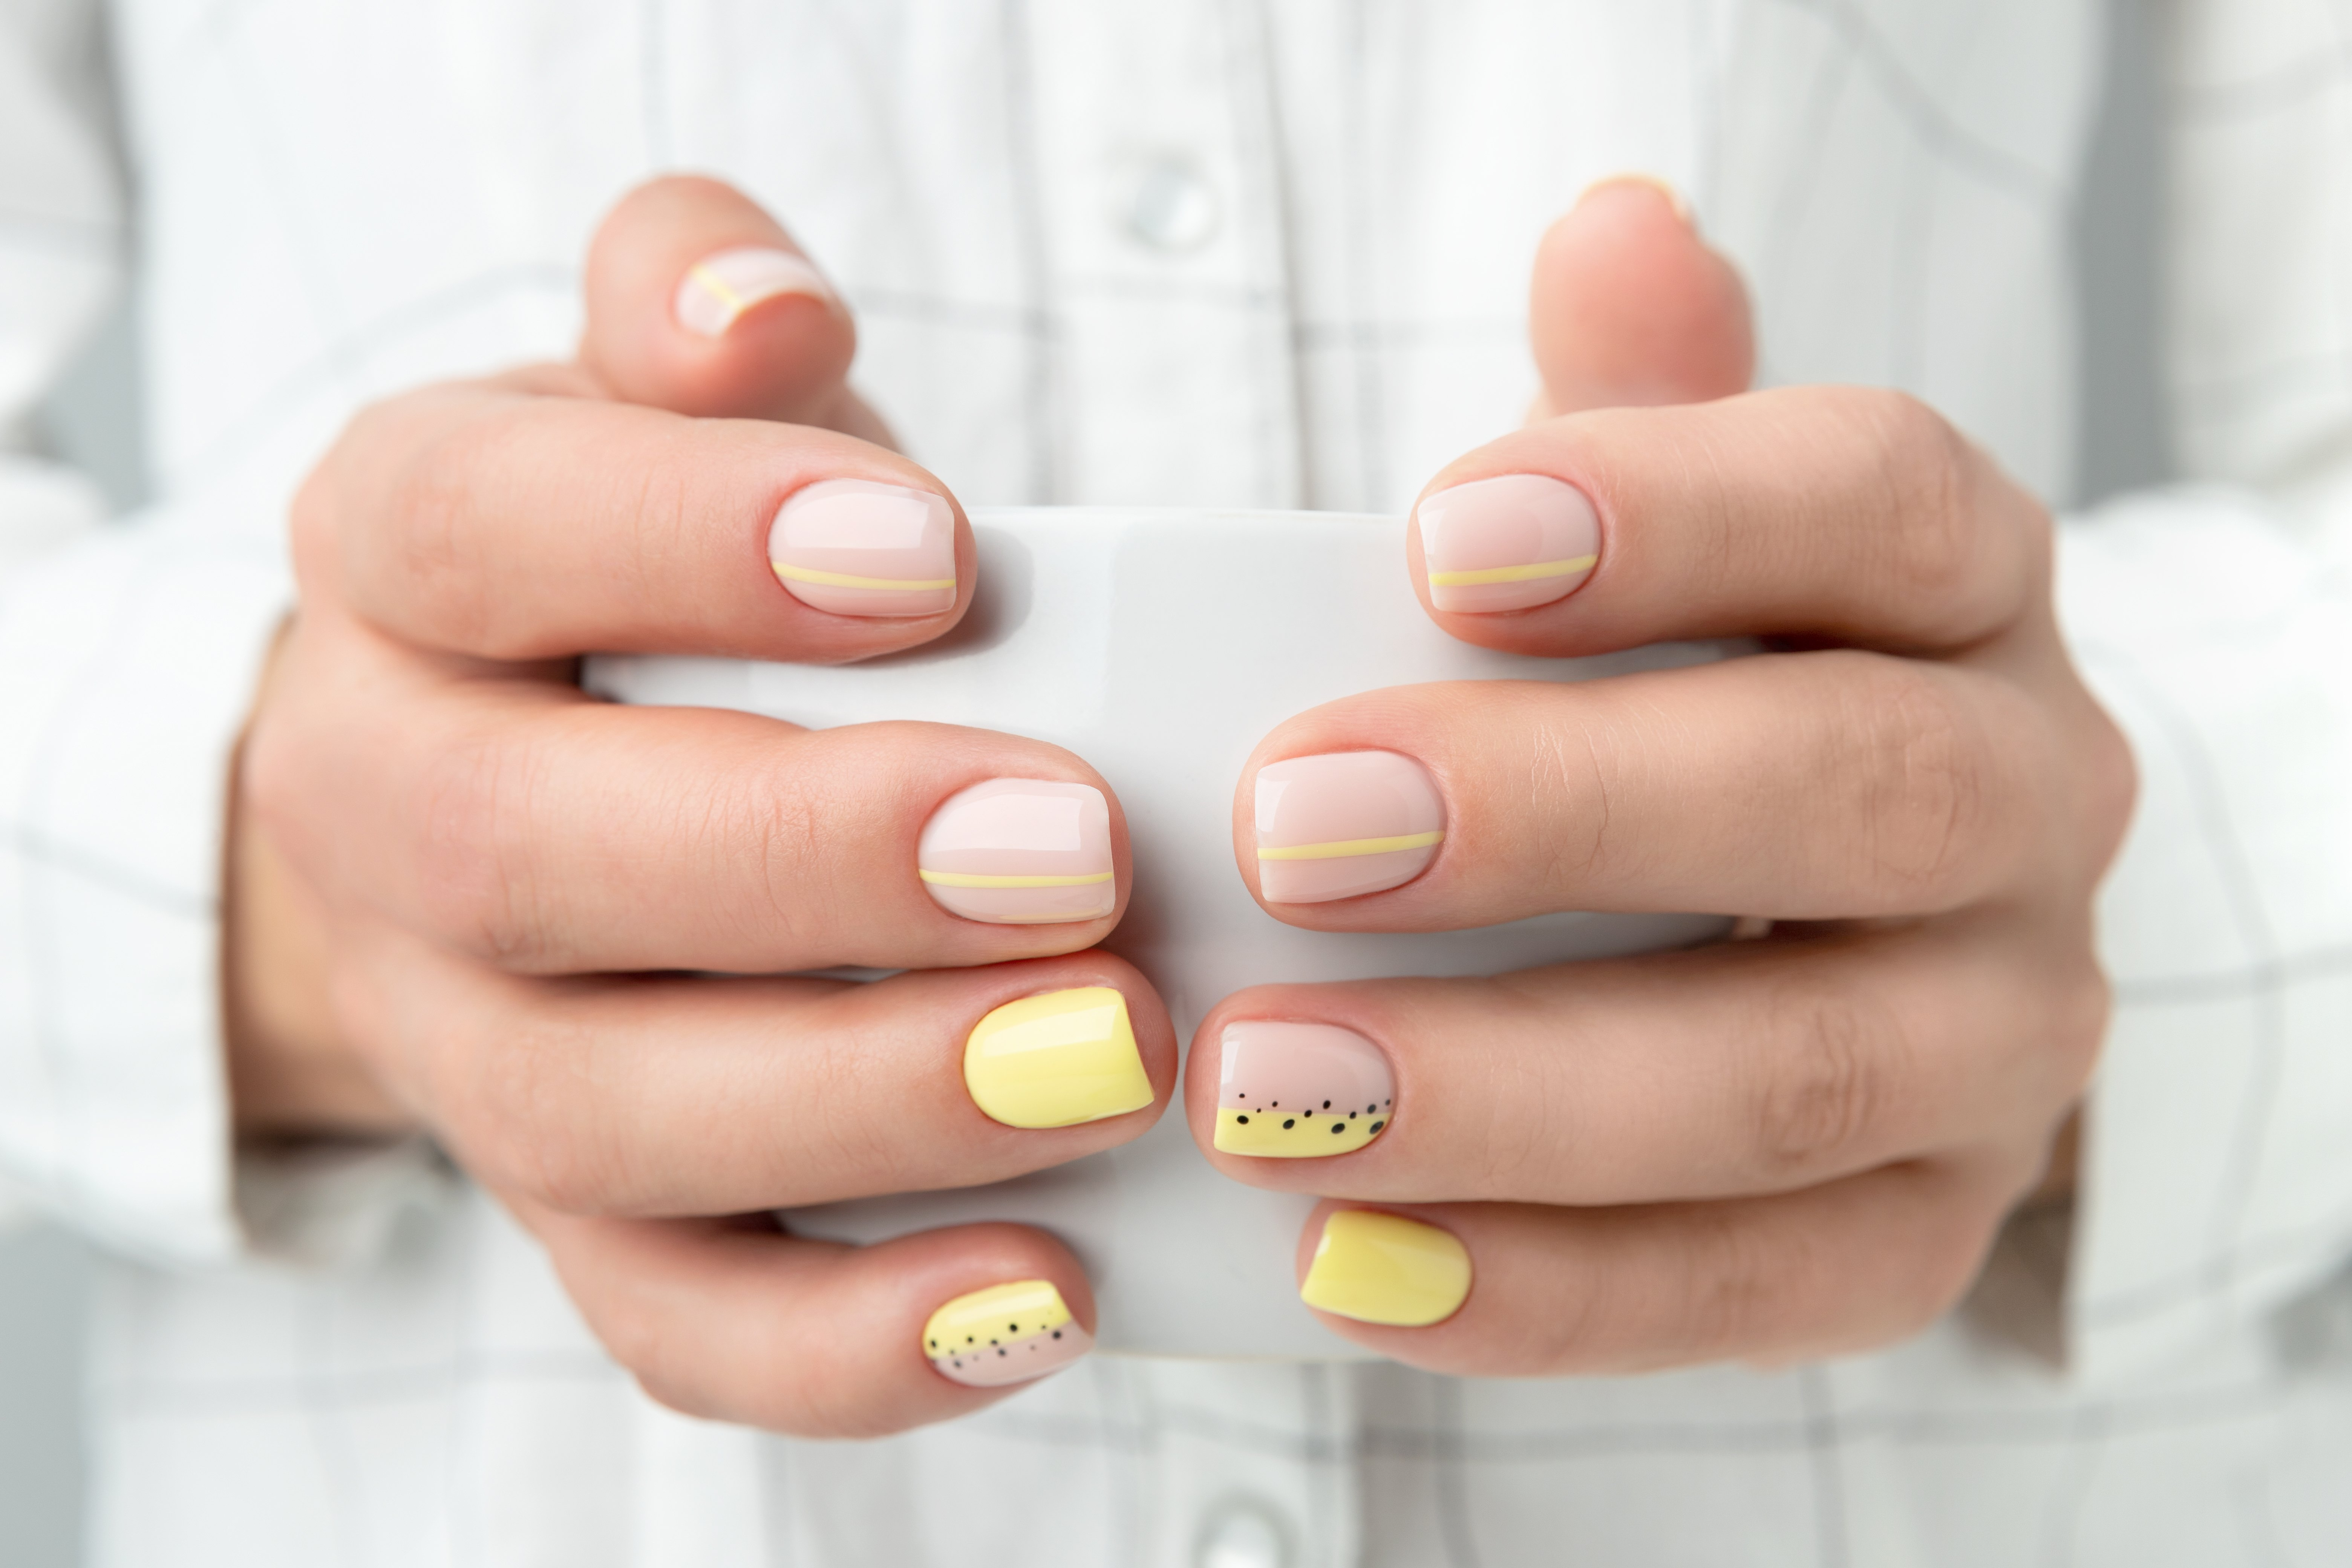 close up of hands with painted nails holding mug